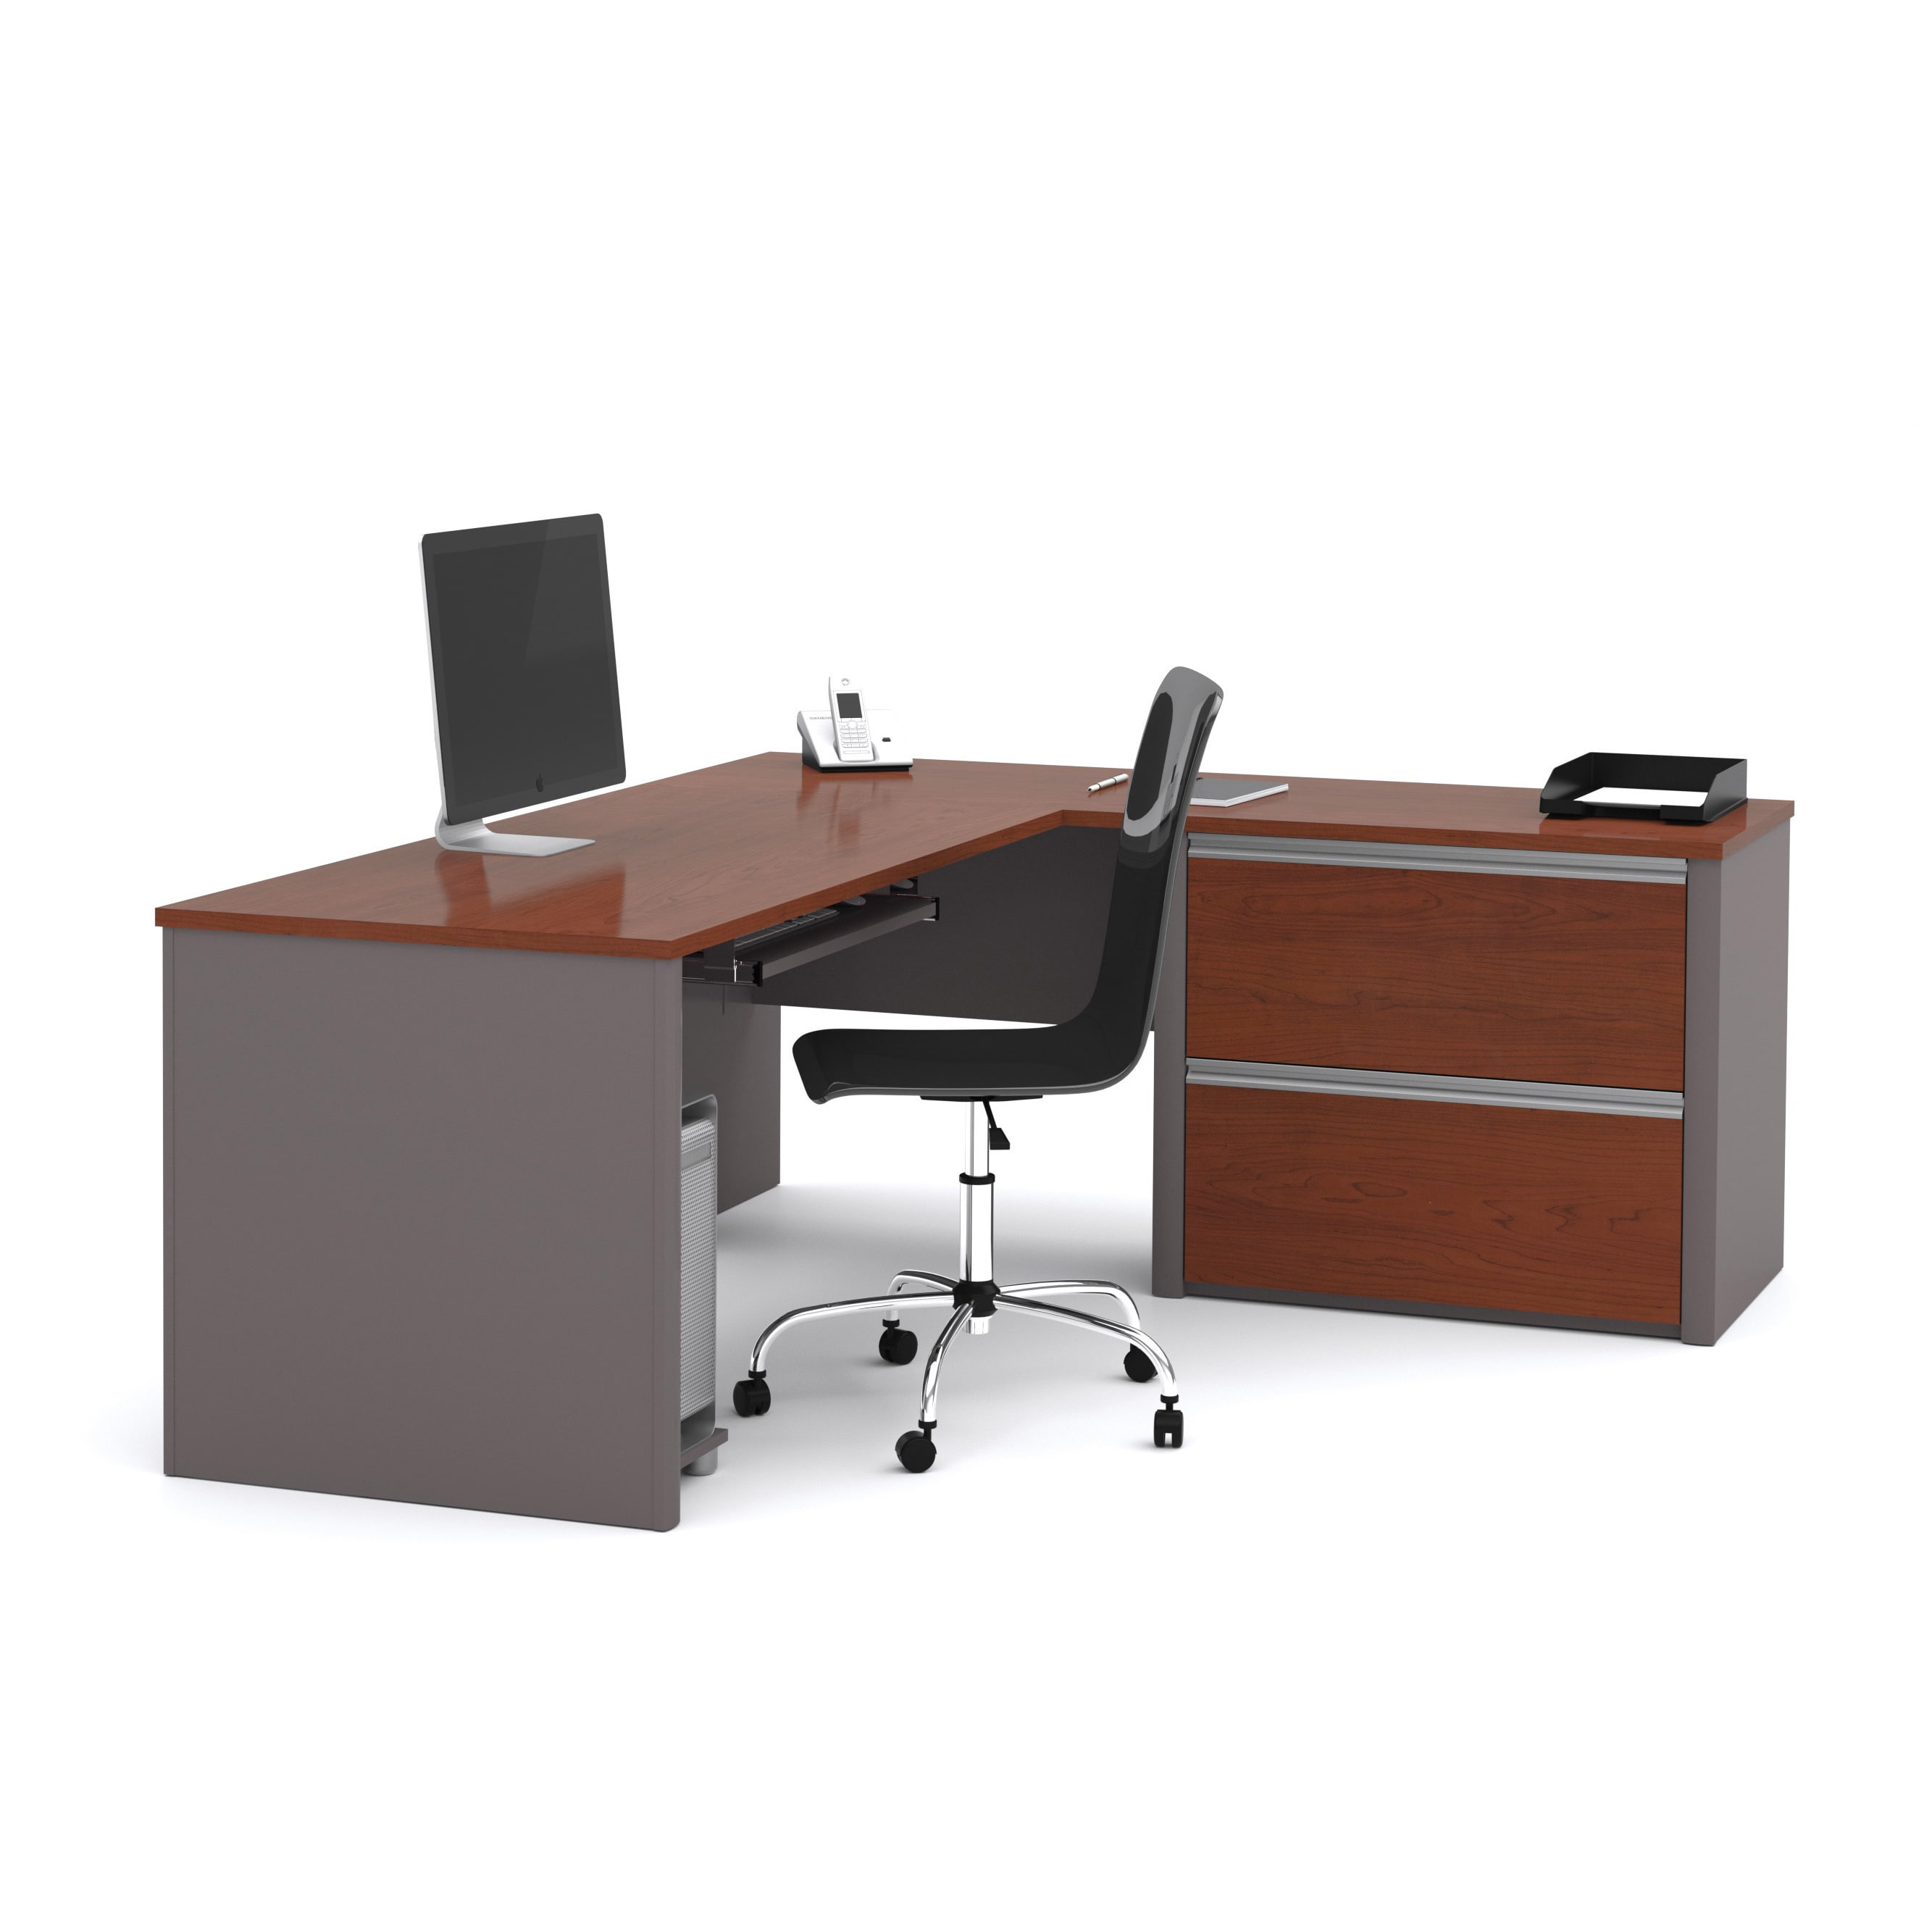 Shop Bestar Connexion L Desk With Oversized Pedestal   Free Shipping Today    Overstock.com   5224316